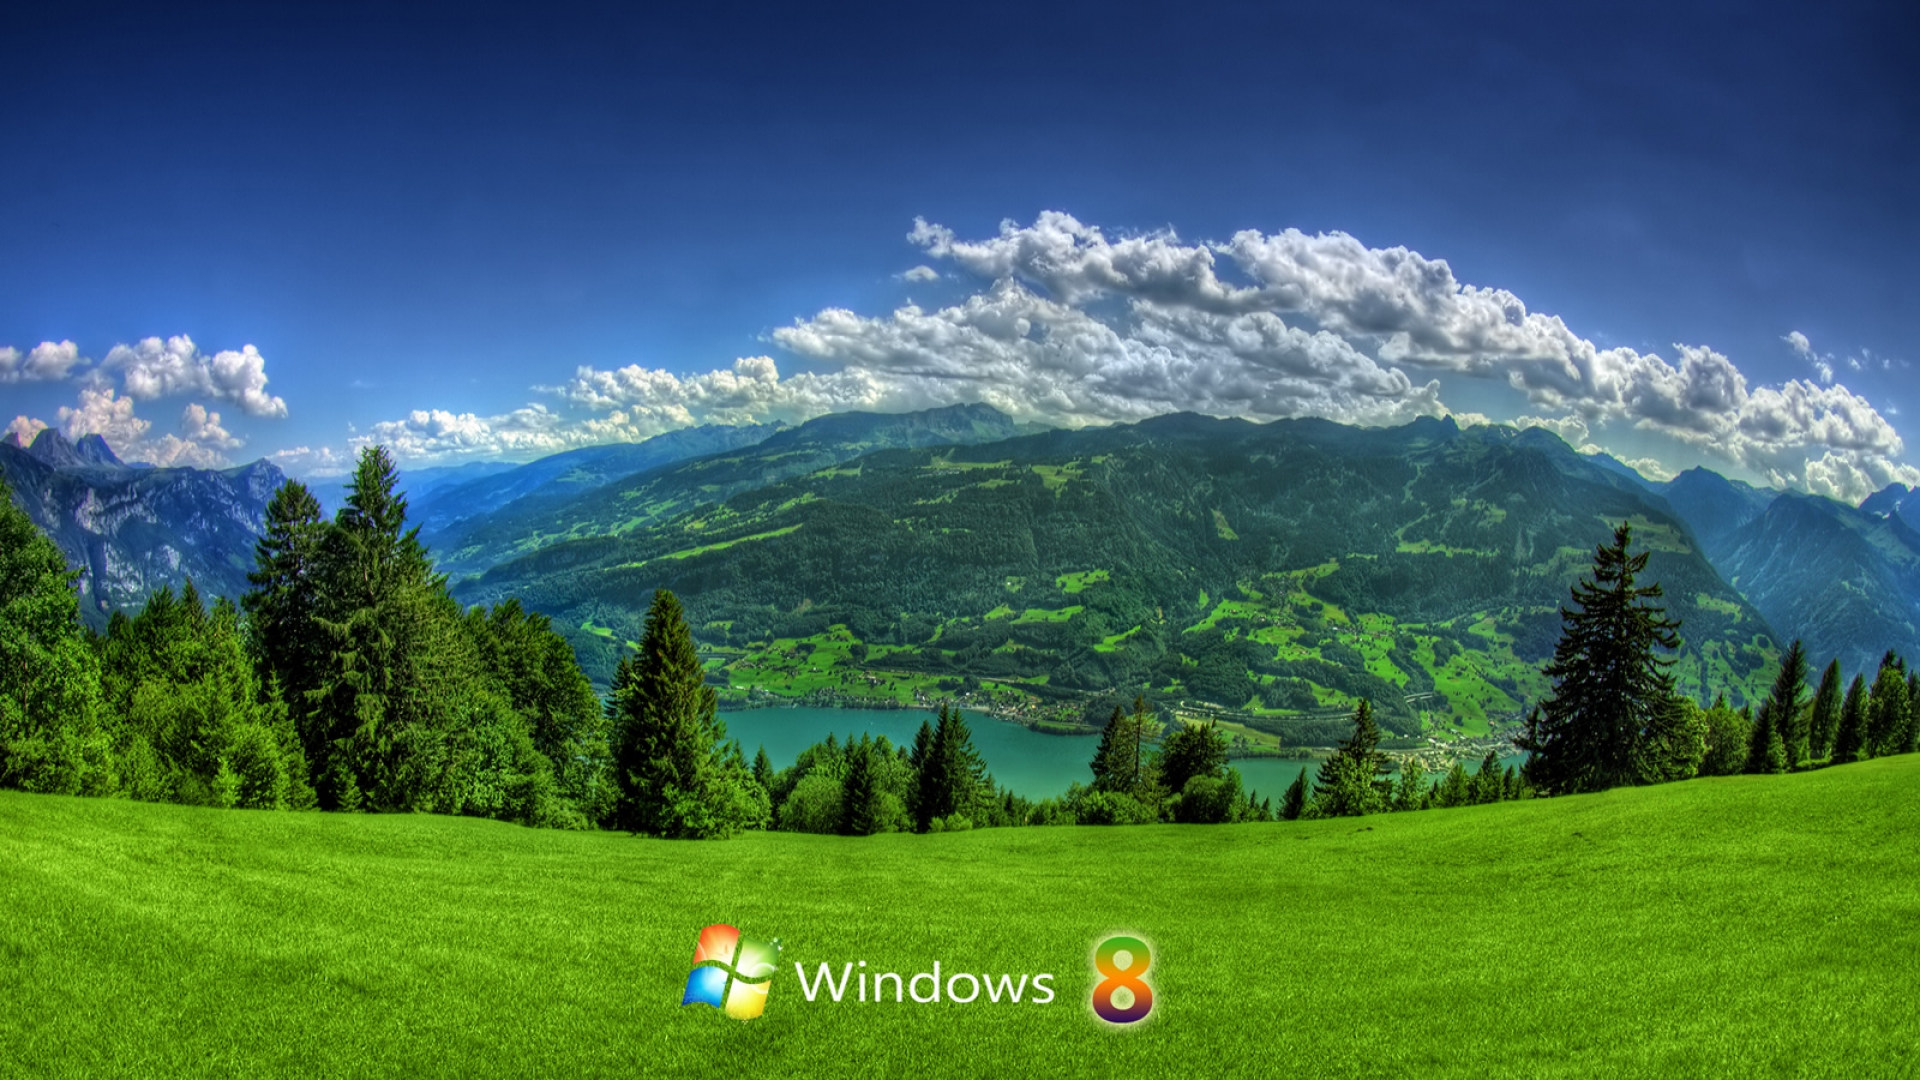 scenic windows 8 wallpaper - hd wallpapers